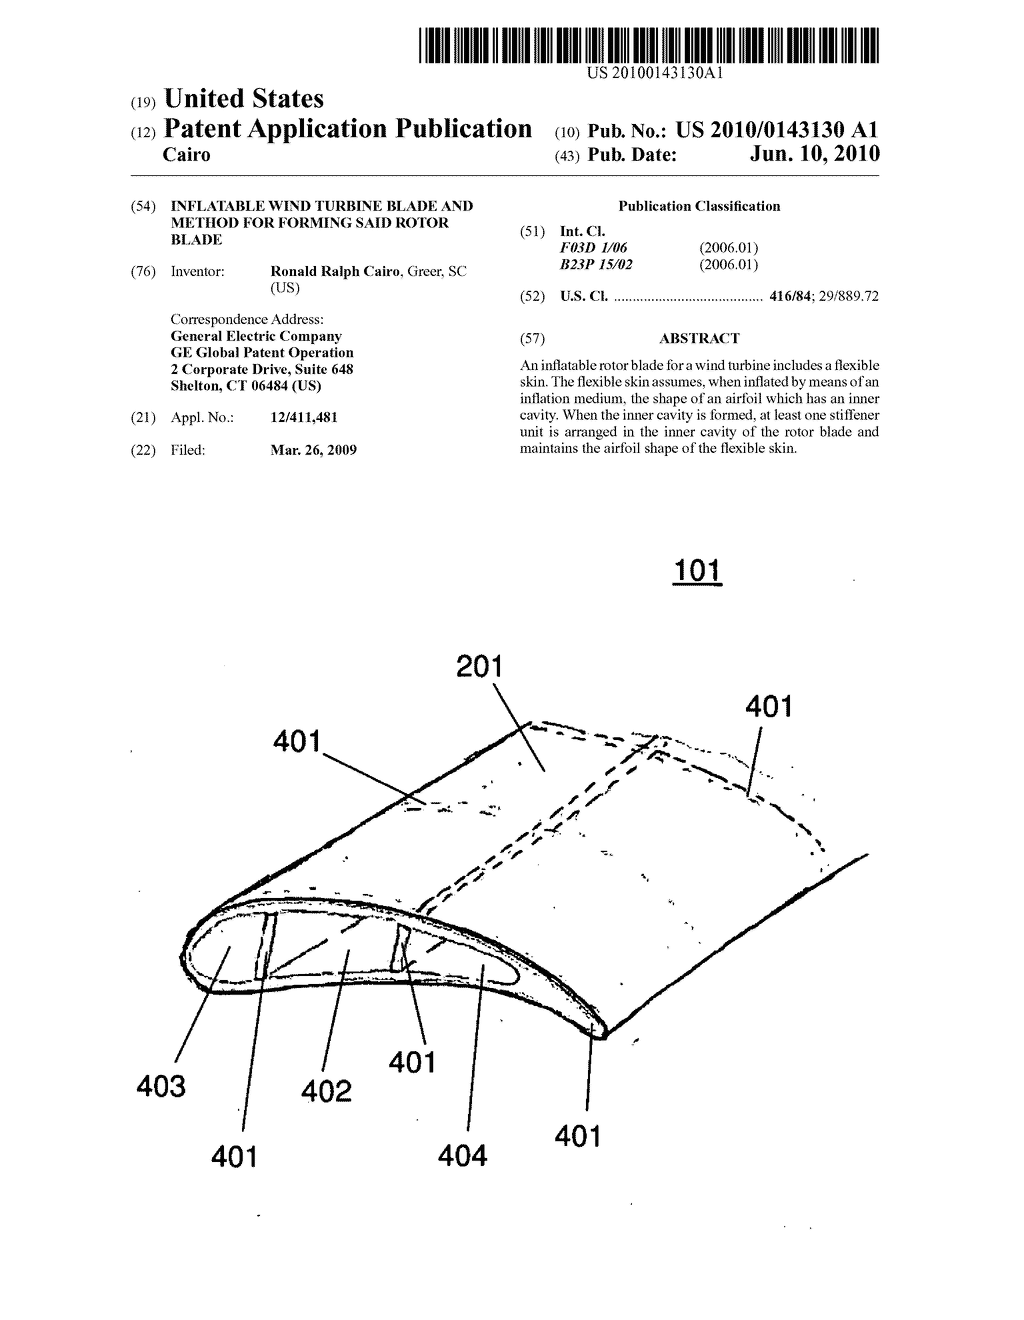 Inflatable Wind Turbine Blade And Method For Forming Said Rotor Mill Diagram Schematic Image 01